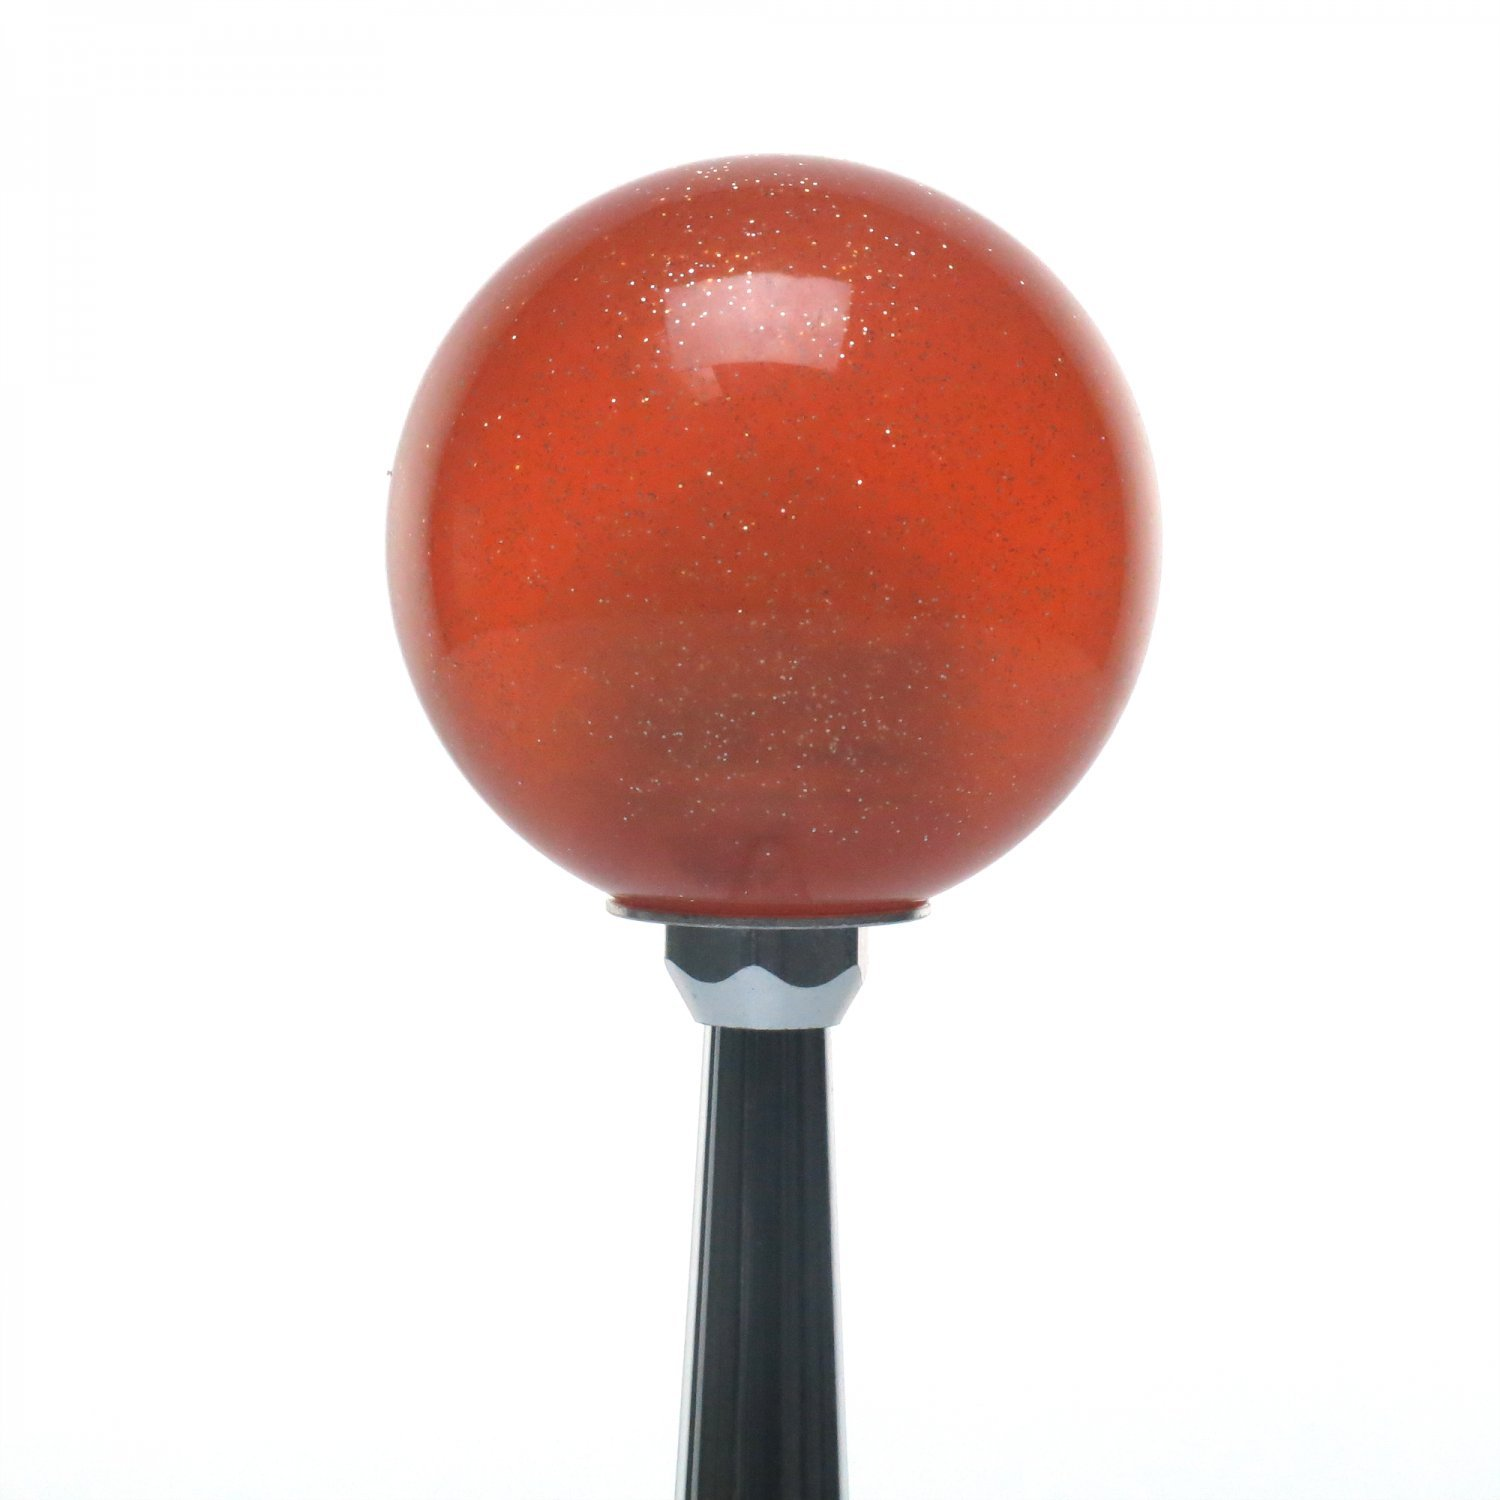 American Shifter 285272 Shift Knob Blue 5 Speed Shift Pattern - Prison Ticket Orange Metal Flake with M16 x 1.5 Insert